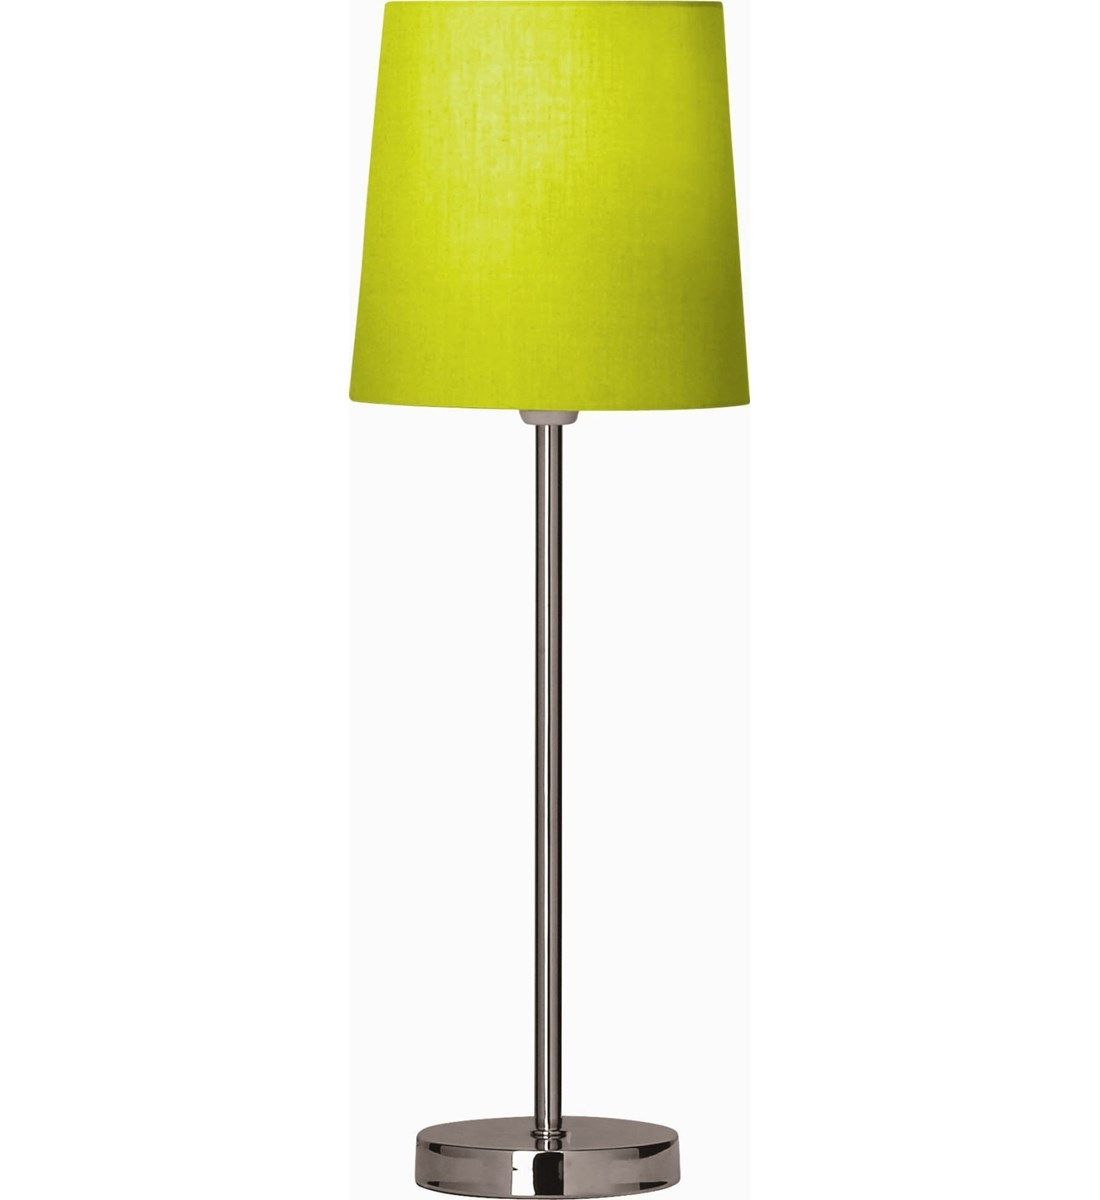 Lime Green Table Lamp Shades Http Argharts Com Pinterest